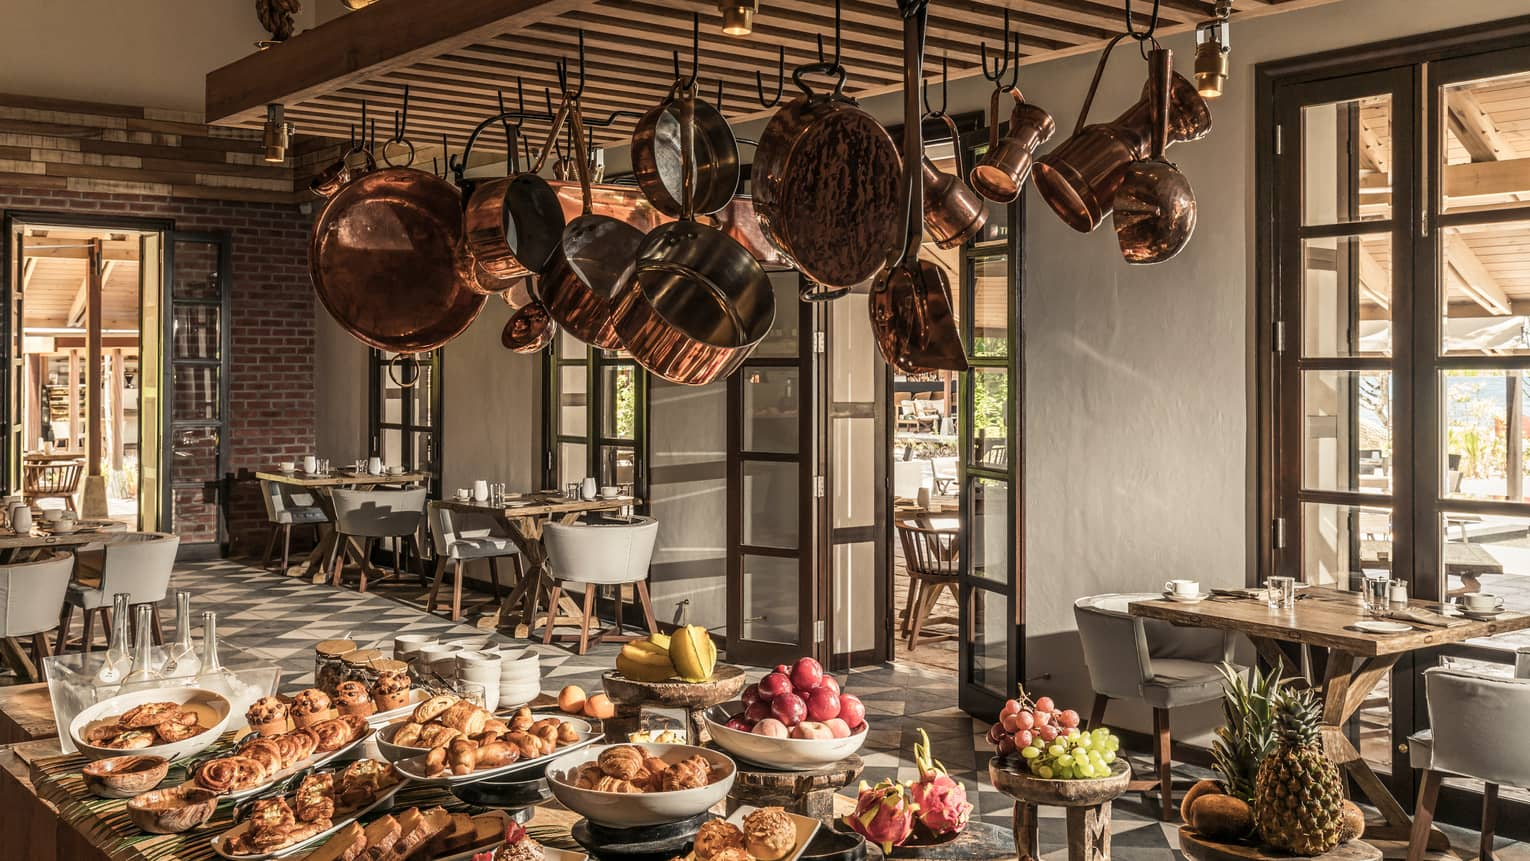 Claudine restaurant interior with hanging copper pots over buffet